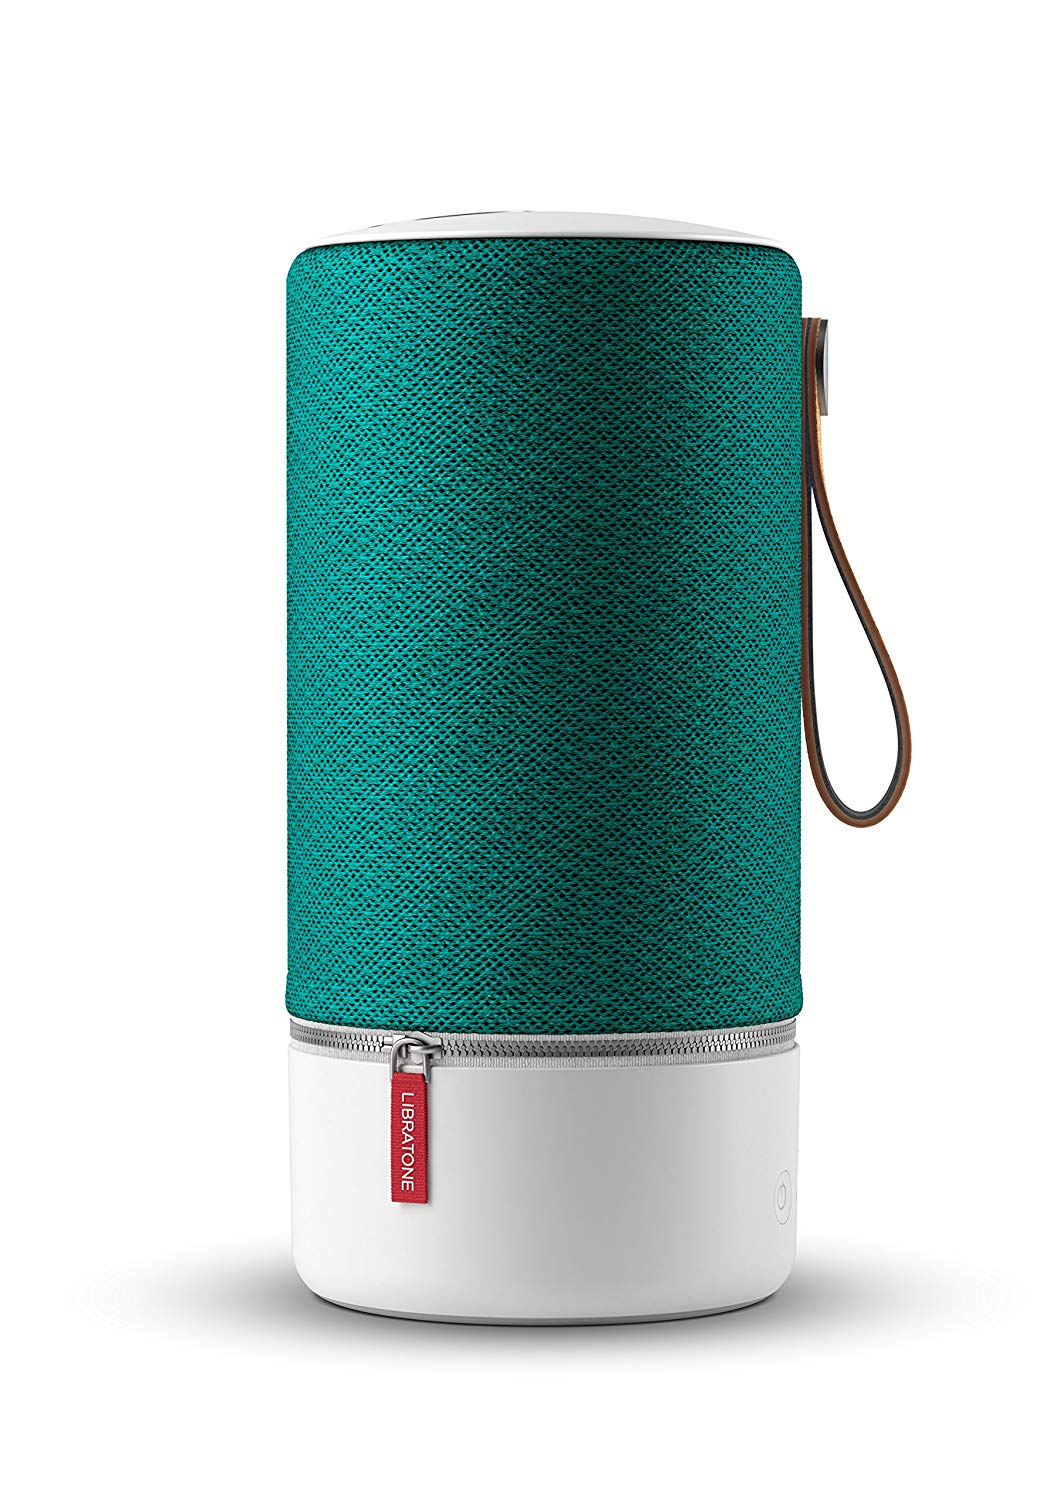 Libratone wireless Lautsprecher amazon